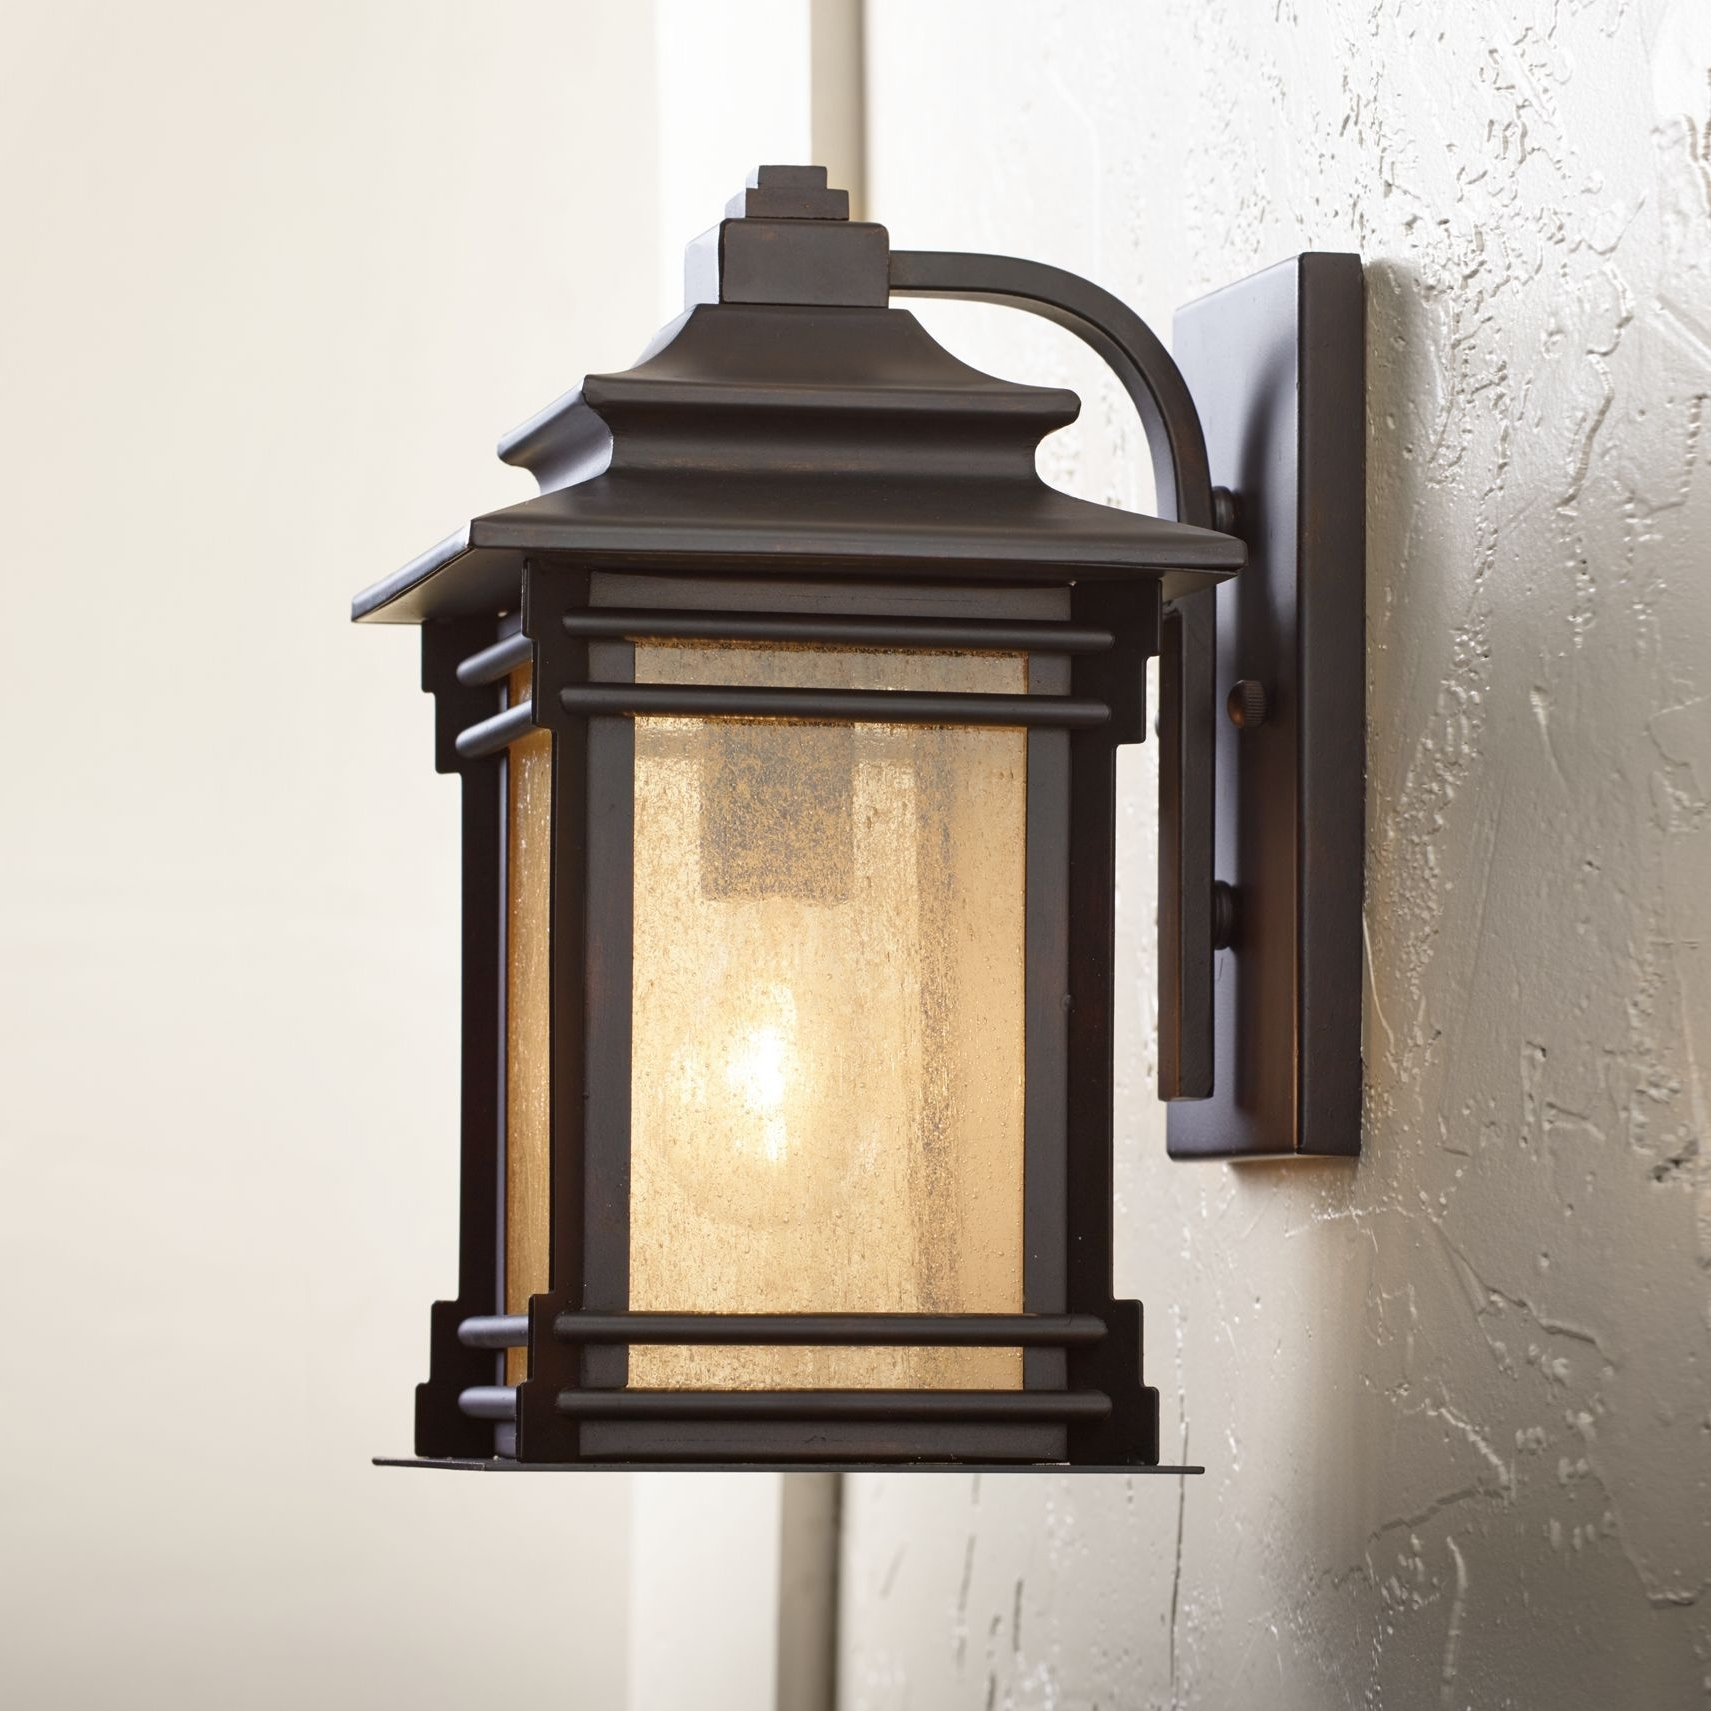 2019 Outdoor: Lowes Motion Detector Outdoor Lights Lowes Outdoor Flood Pertaining To Outdoor Lanterns At Lowes (View 2 of 20)